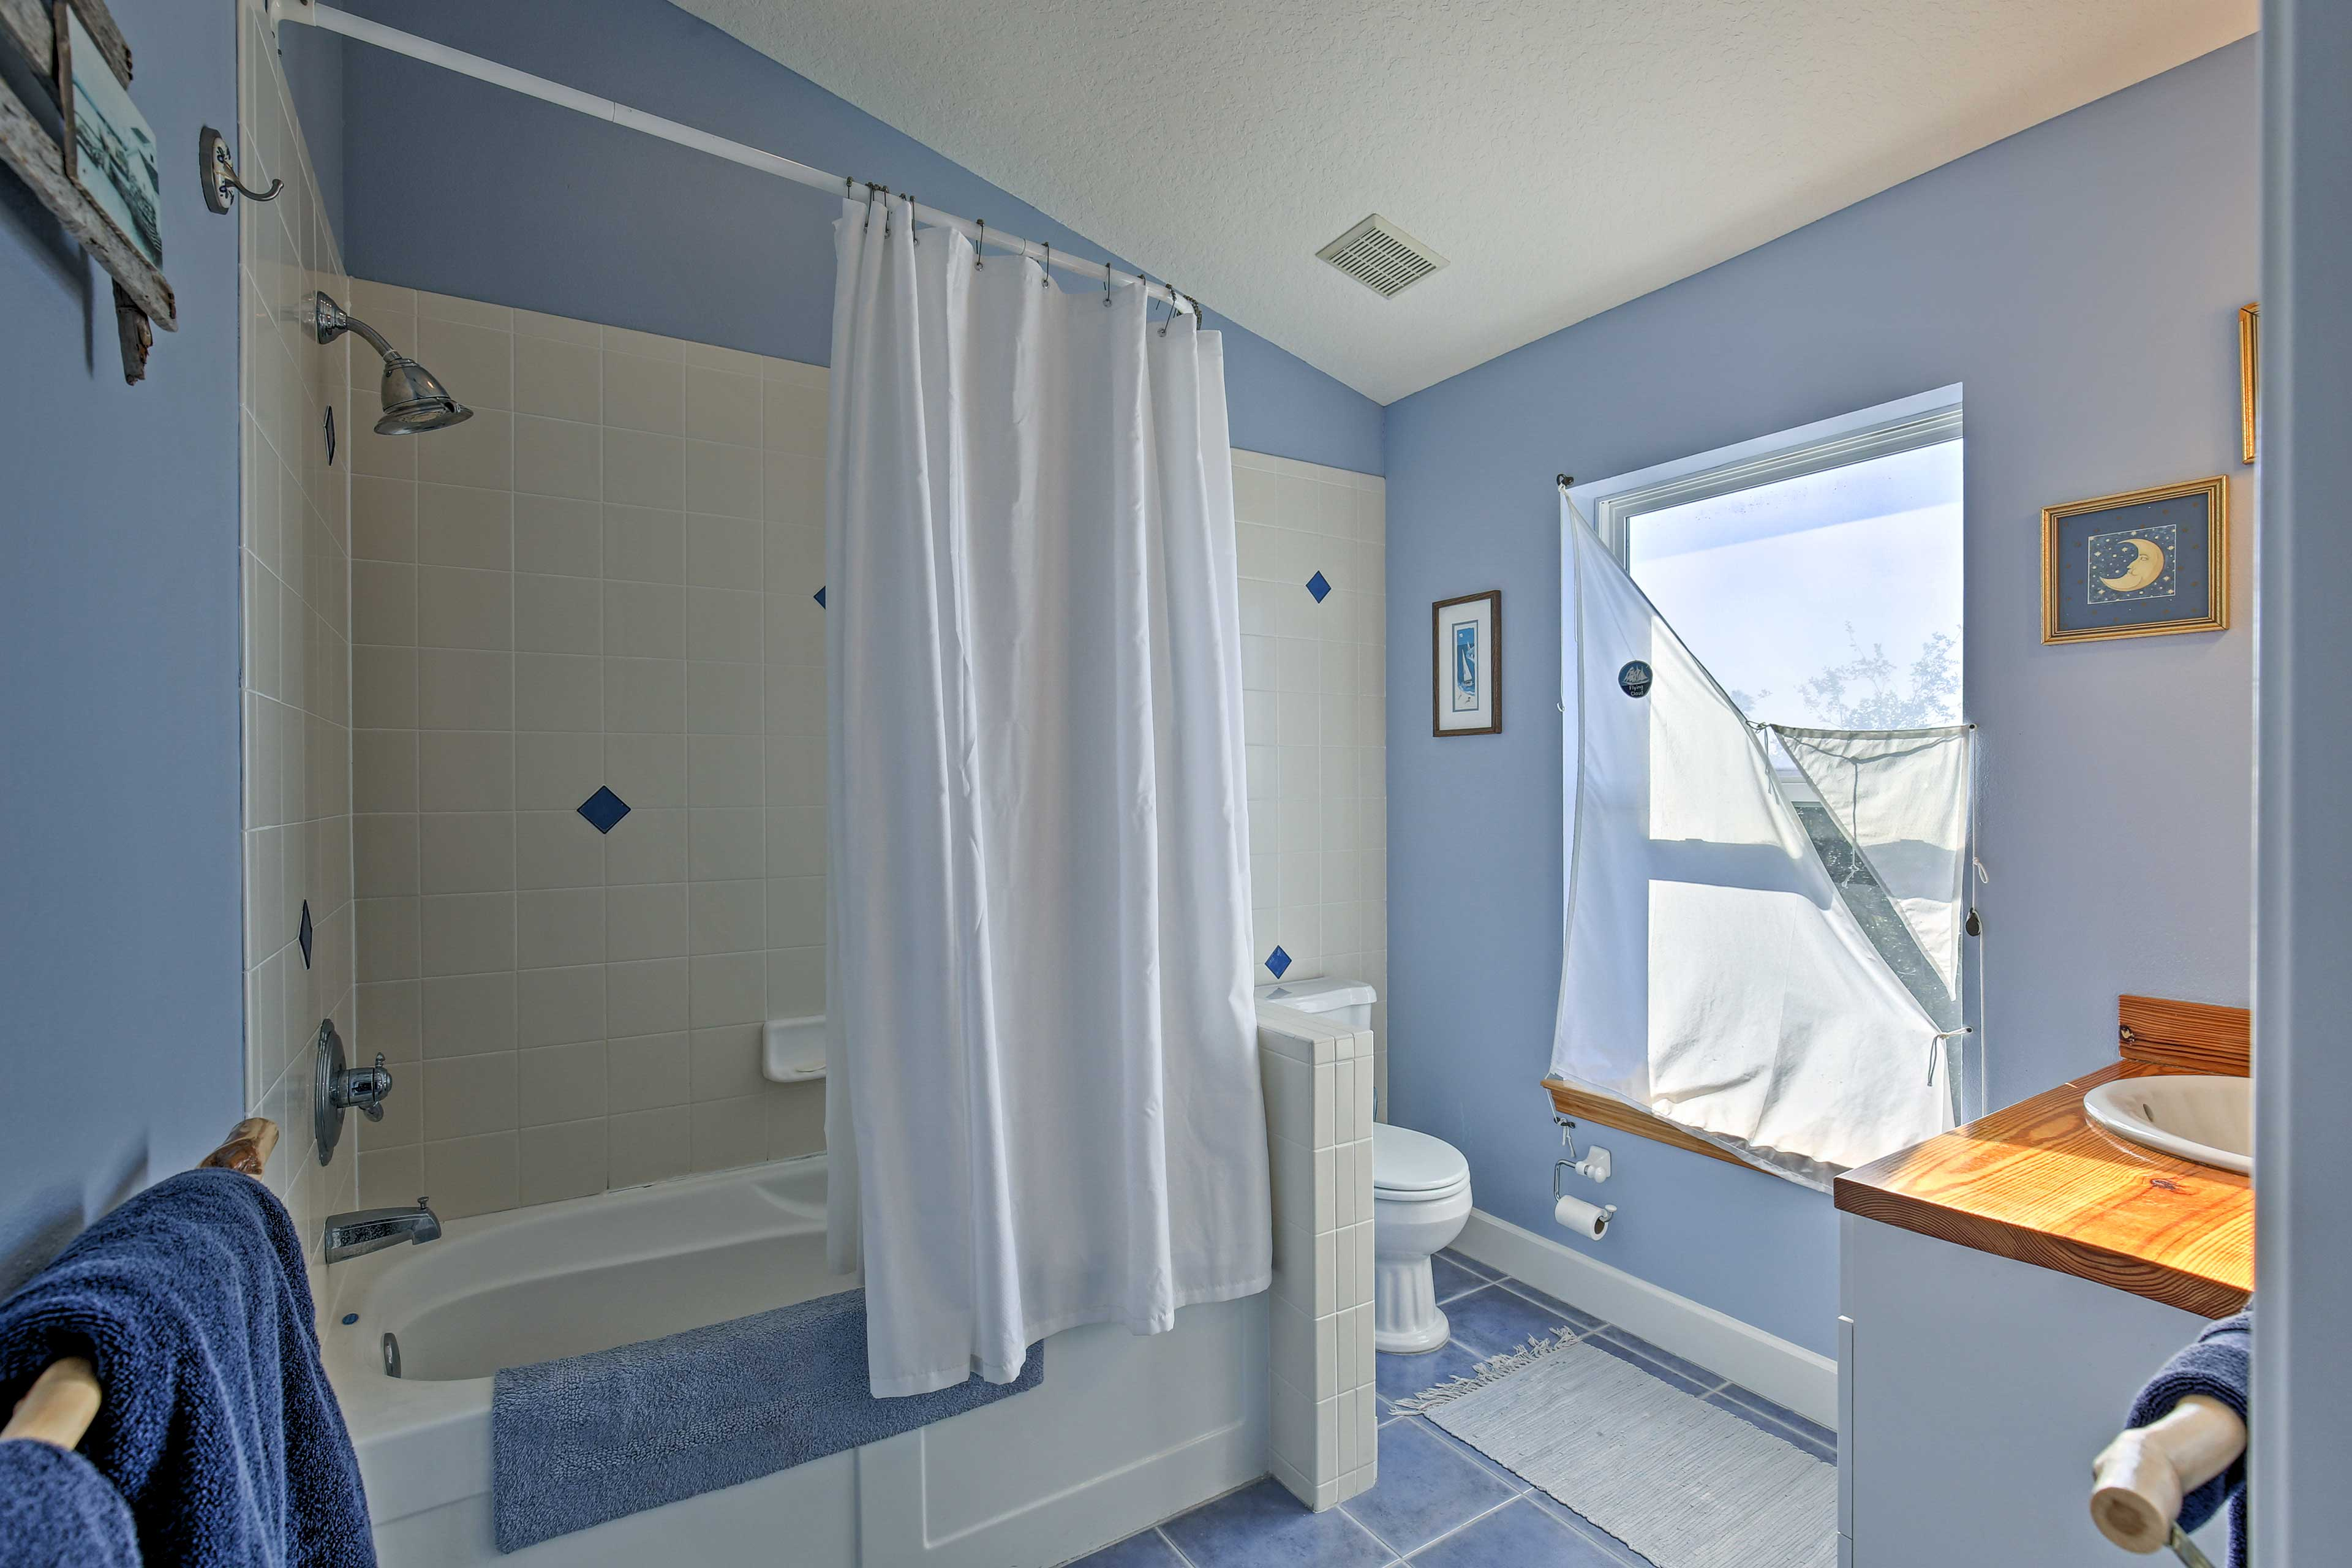 The fourth en-suite is equipped with a shower/tub combo.